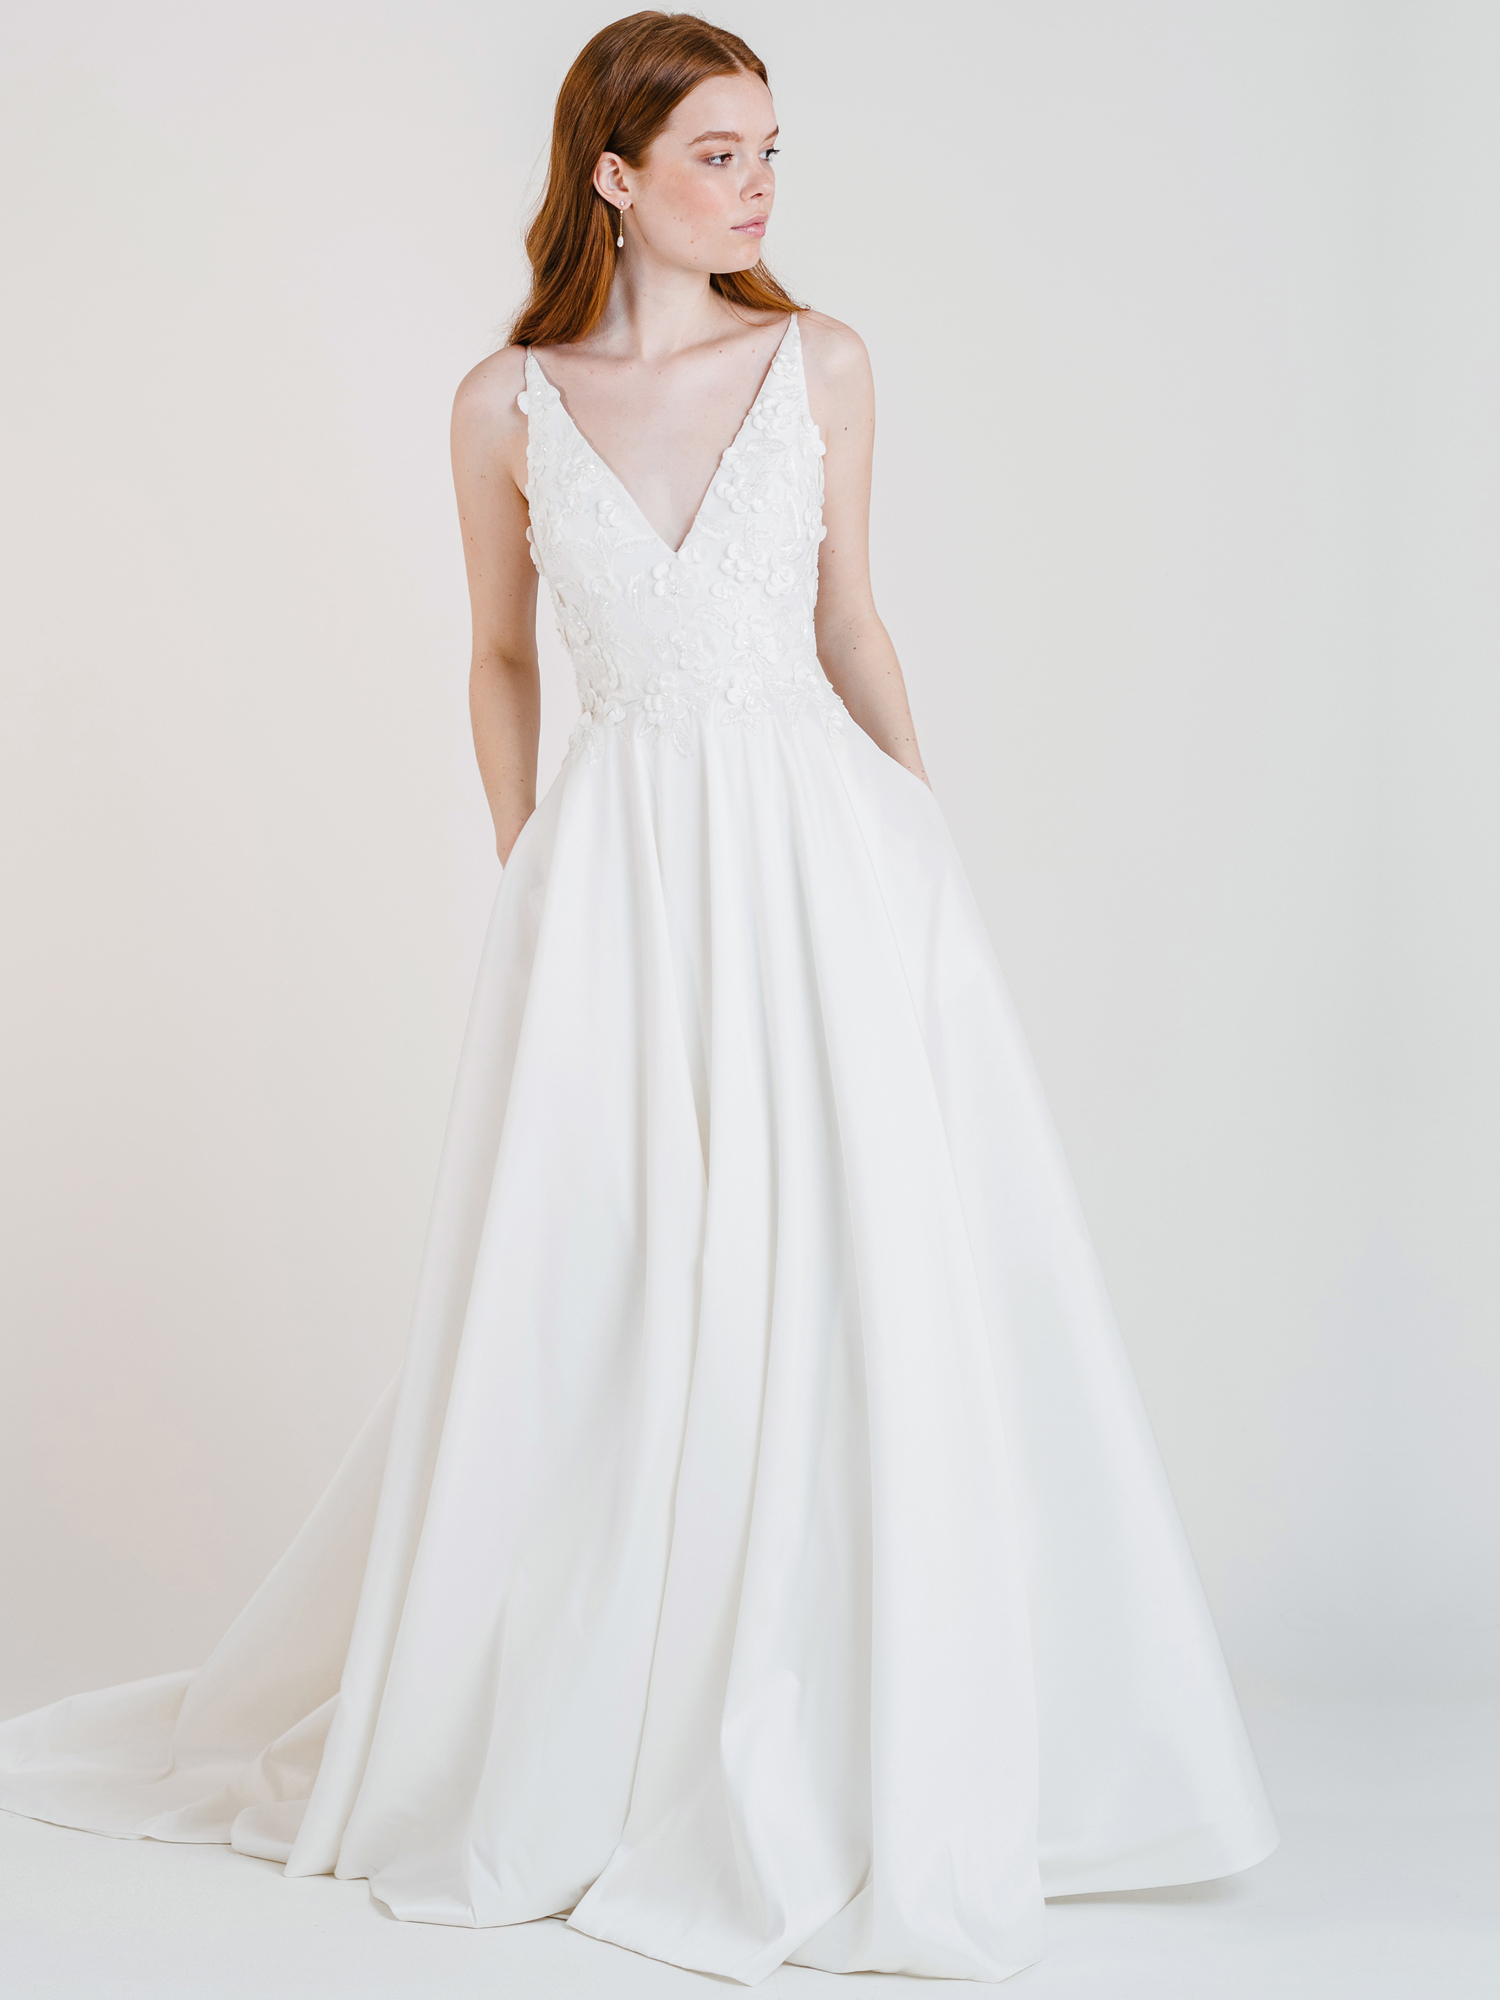 jenny by jenny yoo a-line v-neck floral embellished wedding dress fall 2020